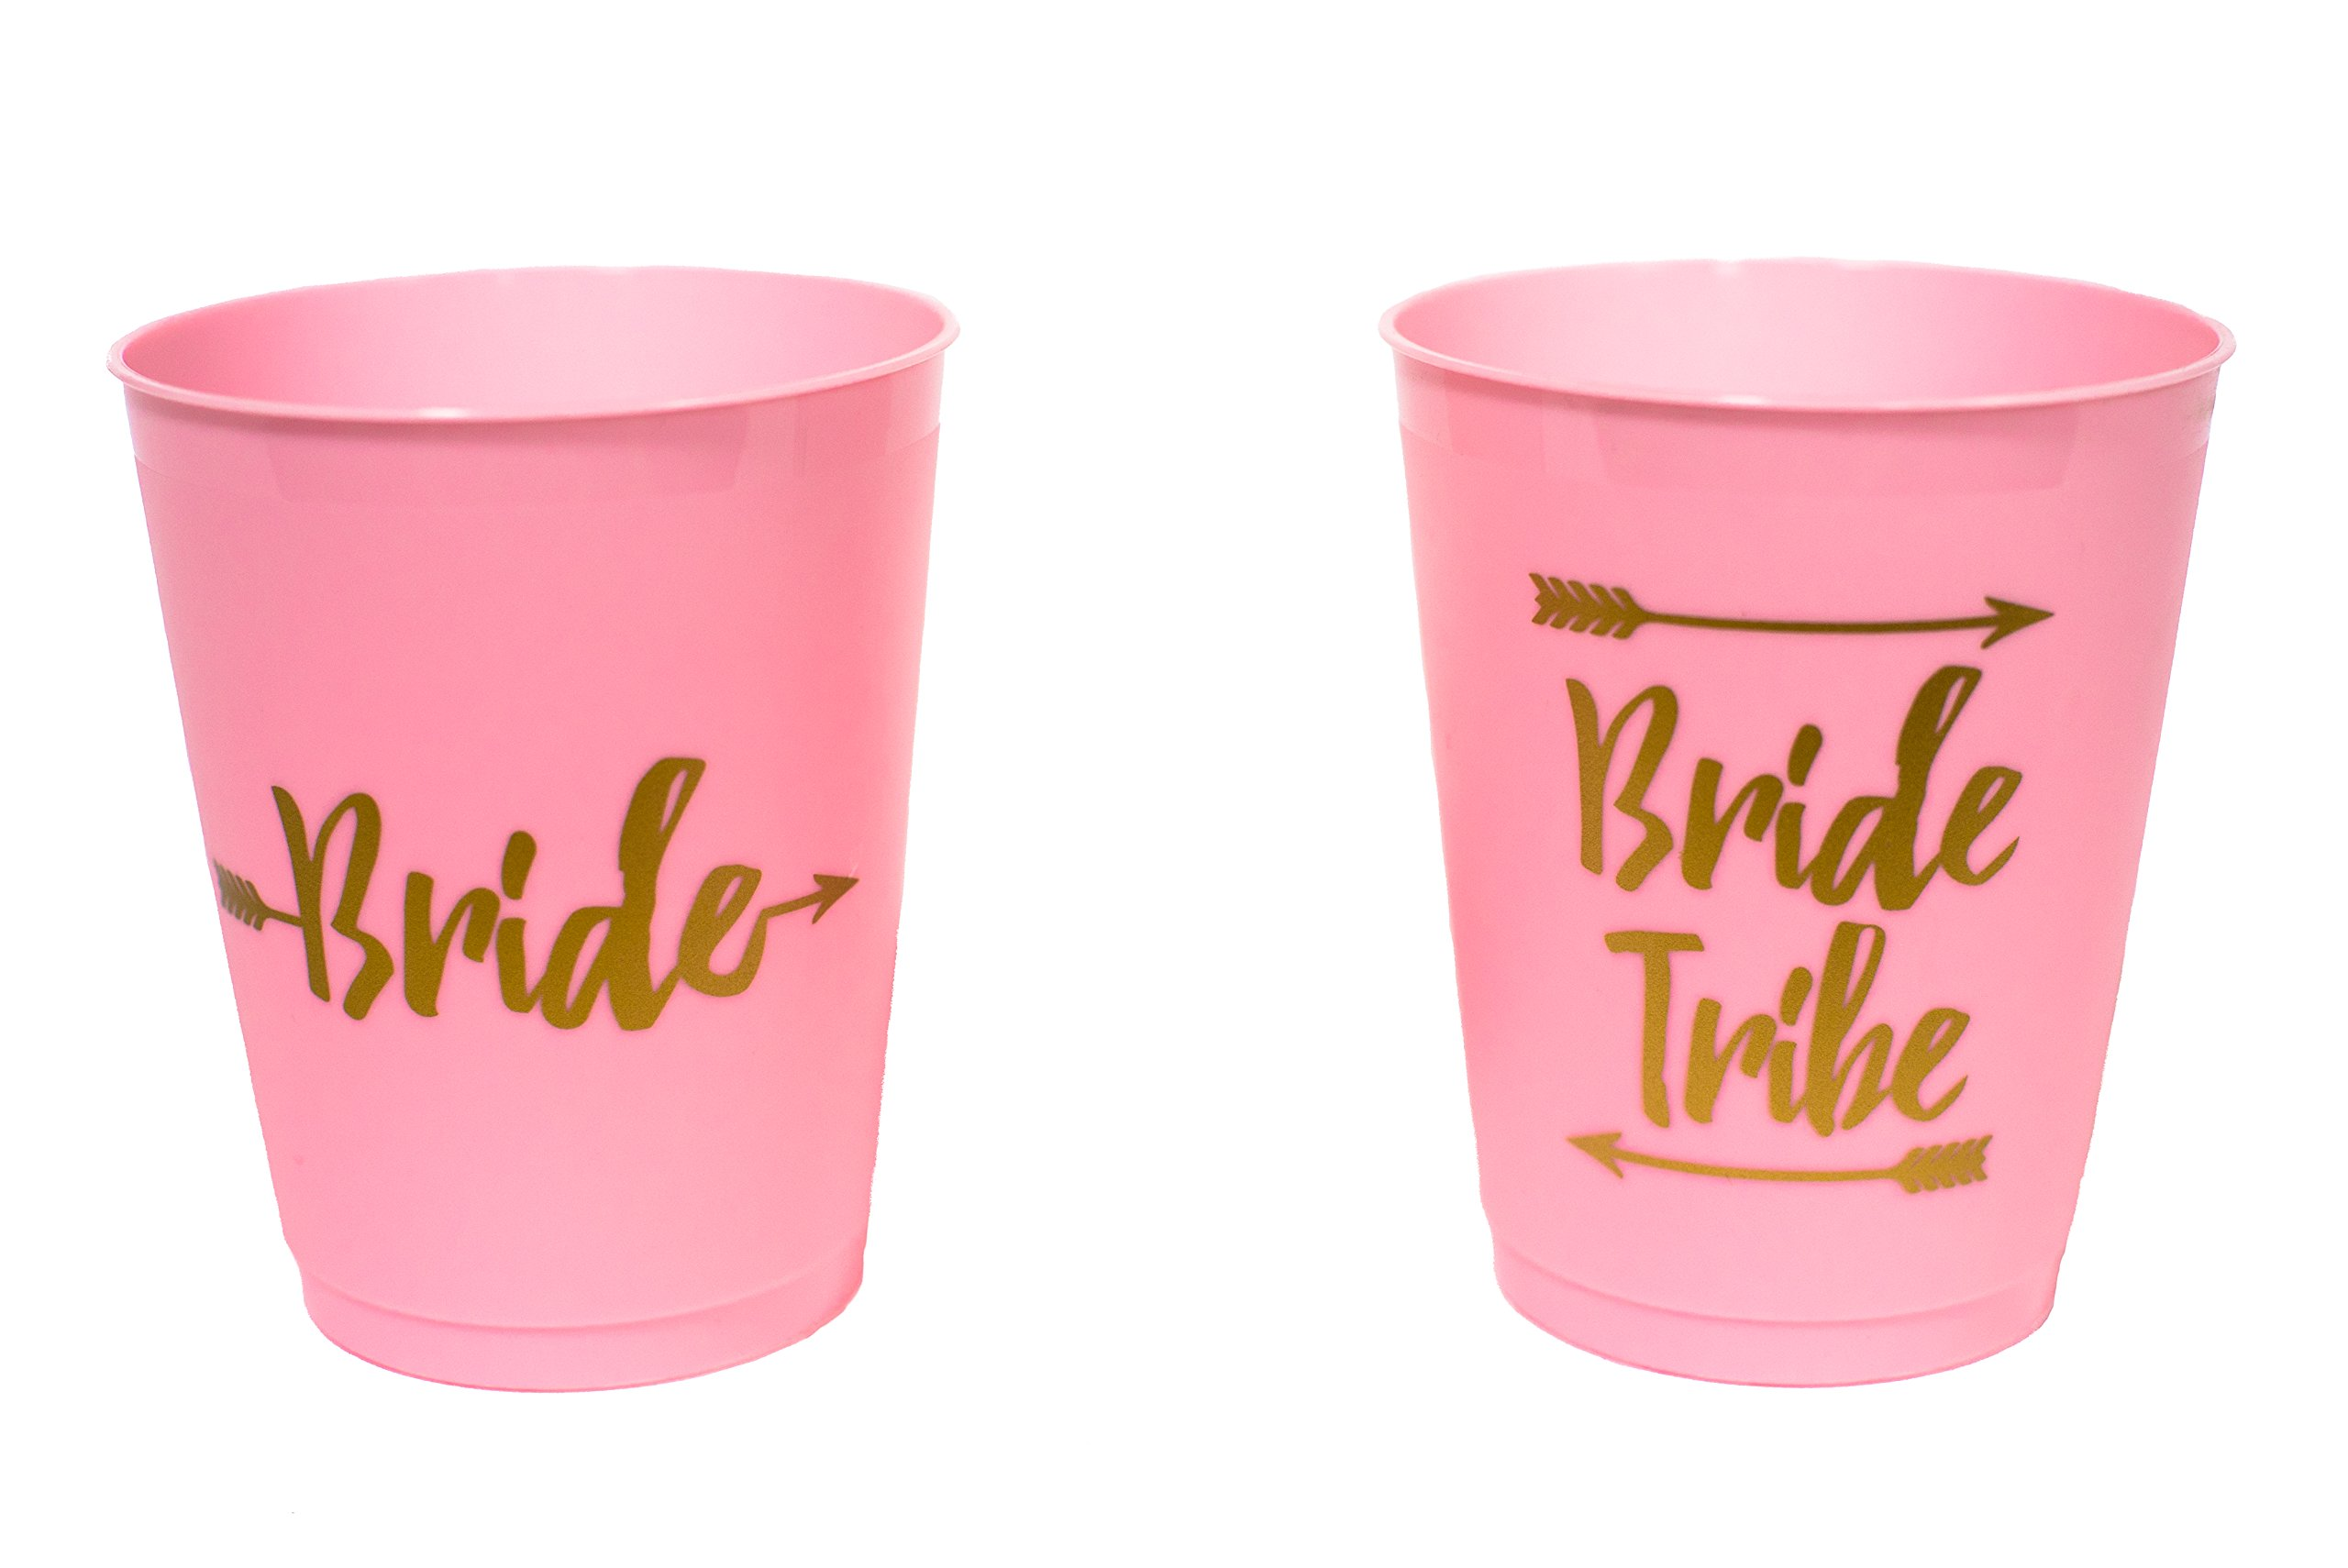 14 Bride and Bride Tribe Bachelorette Party Cups, Bridal Shower Cups for Bachelorette Party, Bridal Shower - Pink and Gold, 16 Ounces